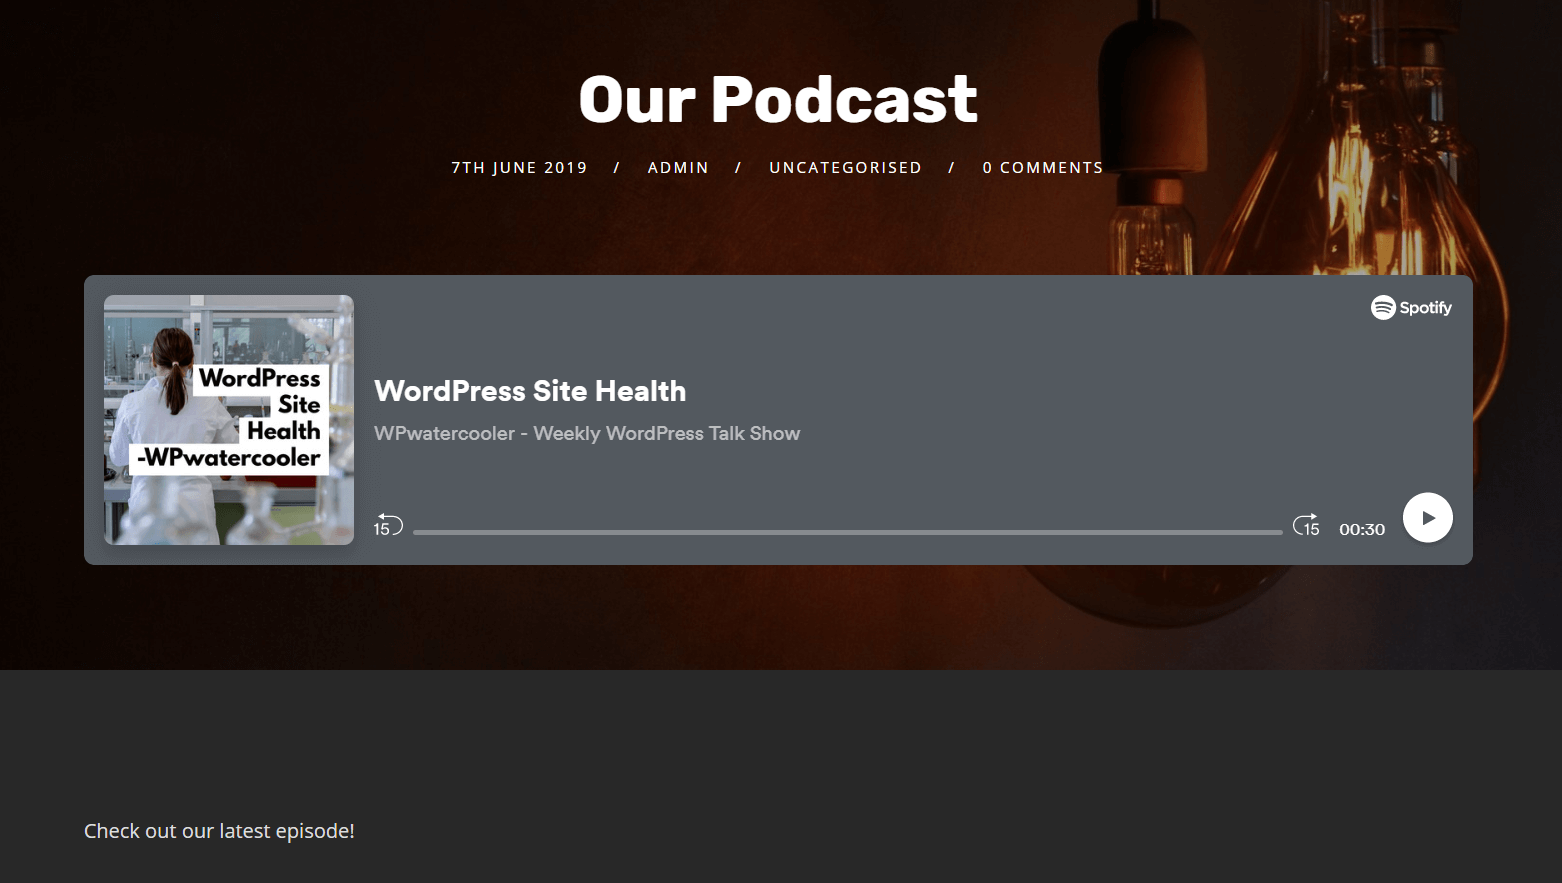 A podcast displayed on a website.